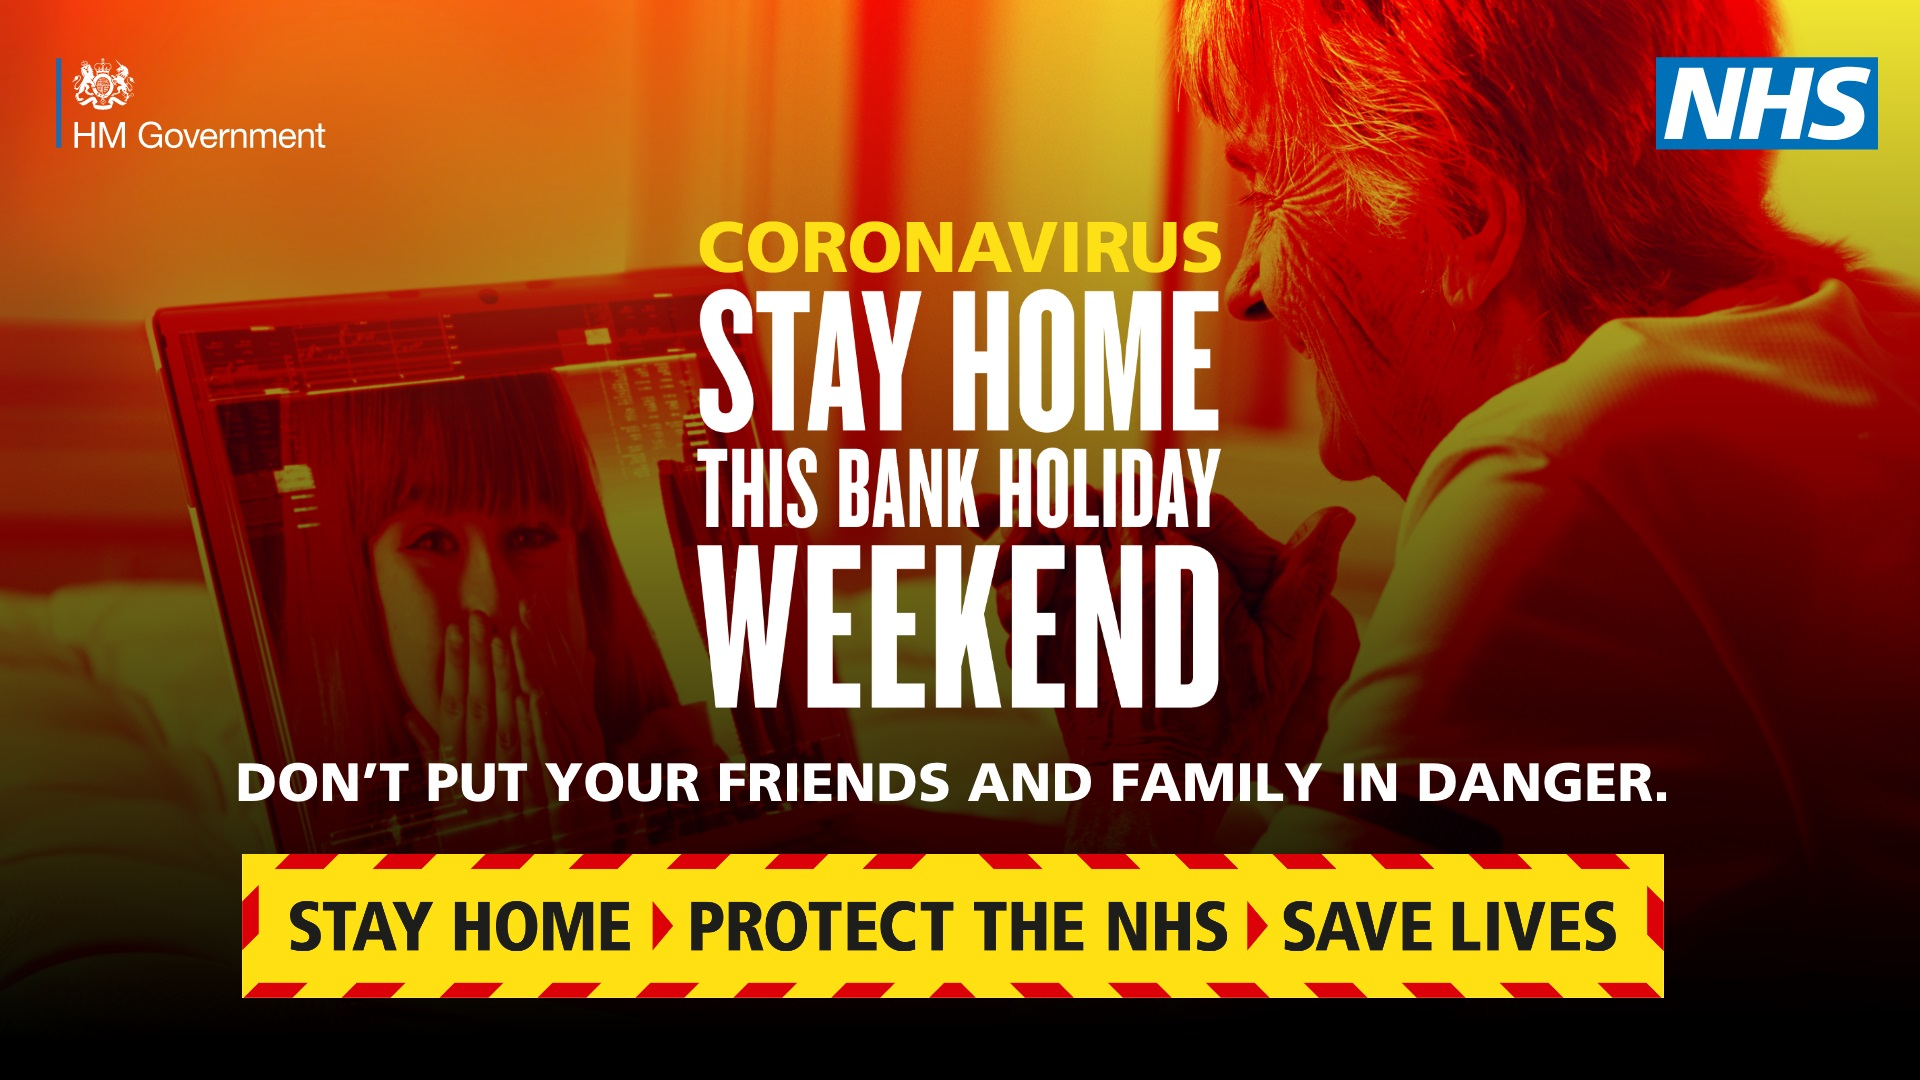 Stay Home this Bank Holiday Weekend